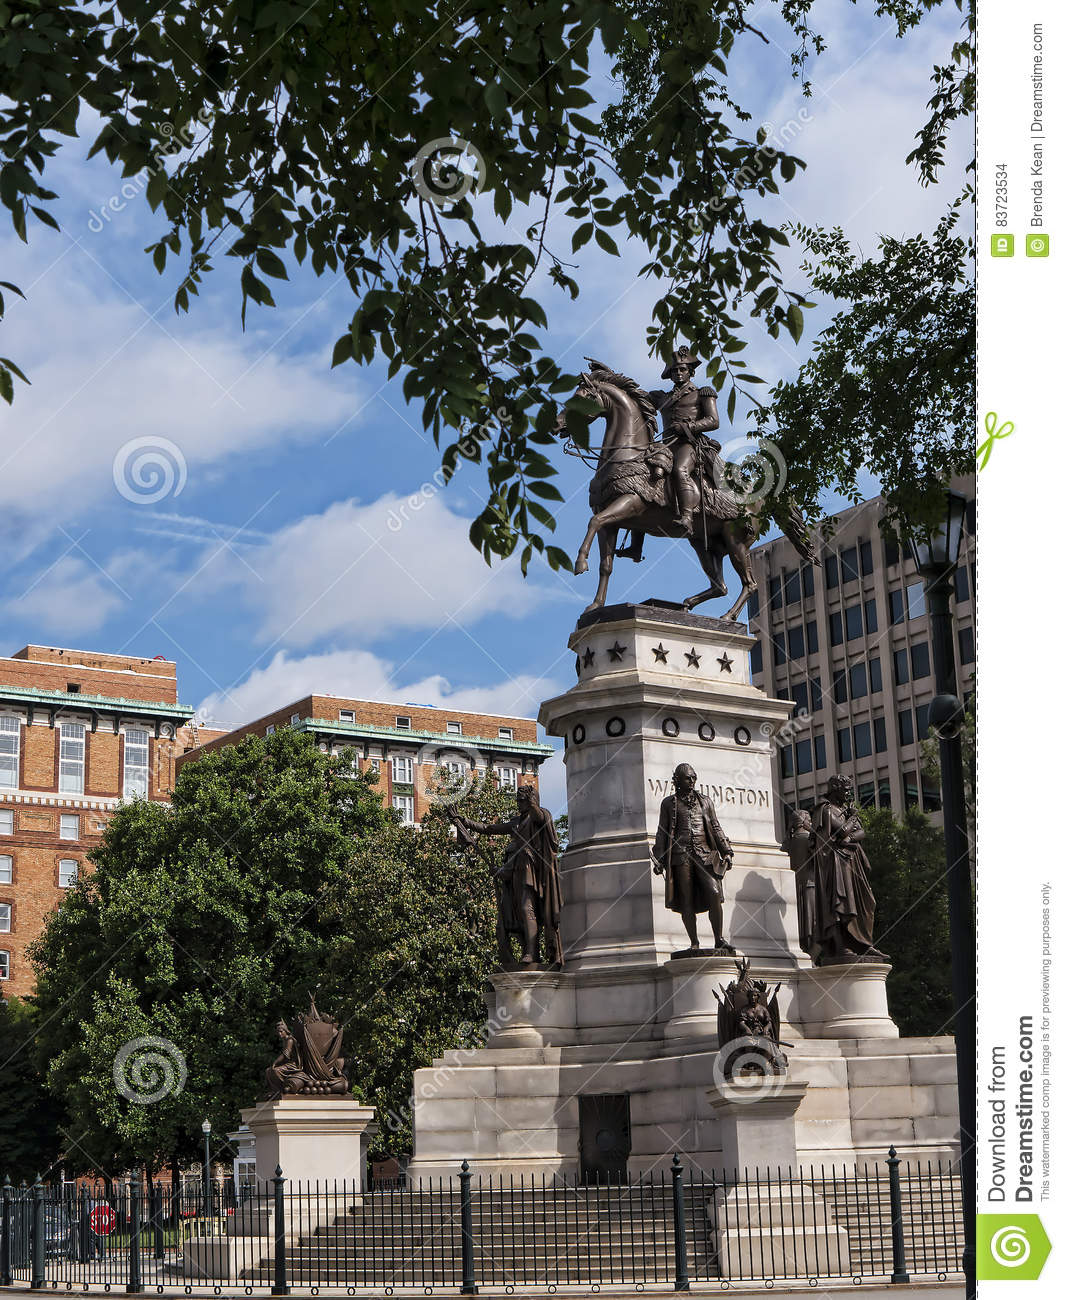 Statue Of George Washington On The Outskirts Of Washington DC USA Editorial Stock Image